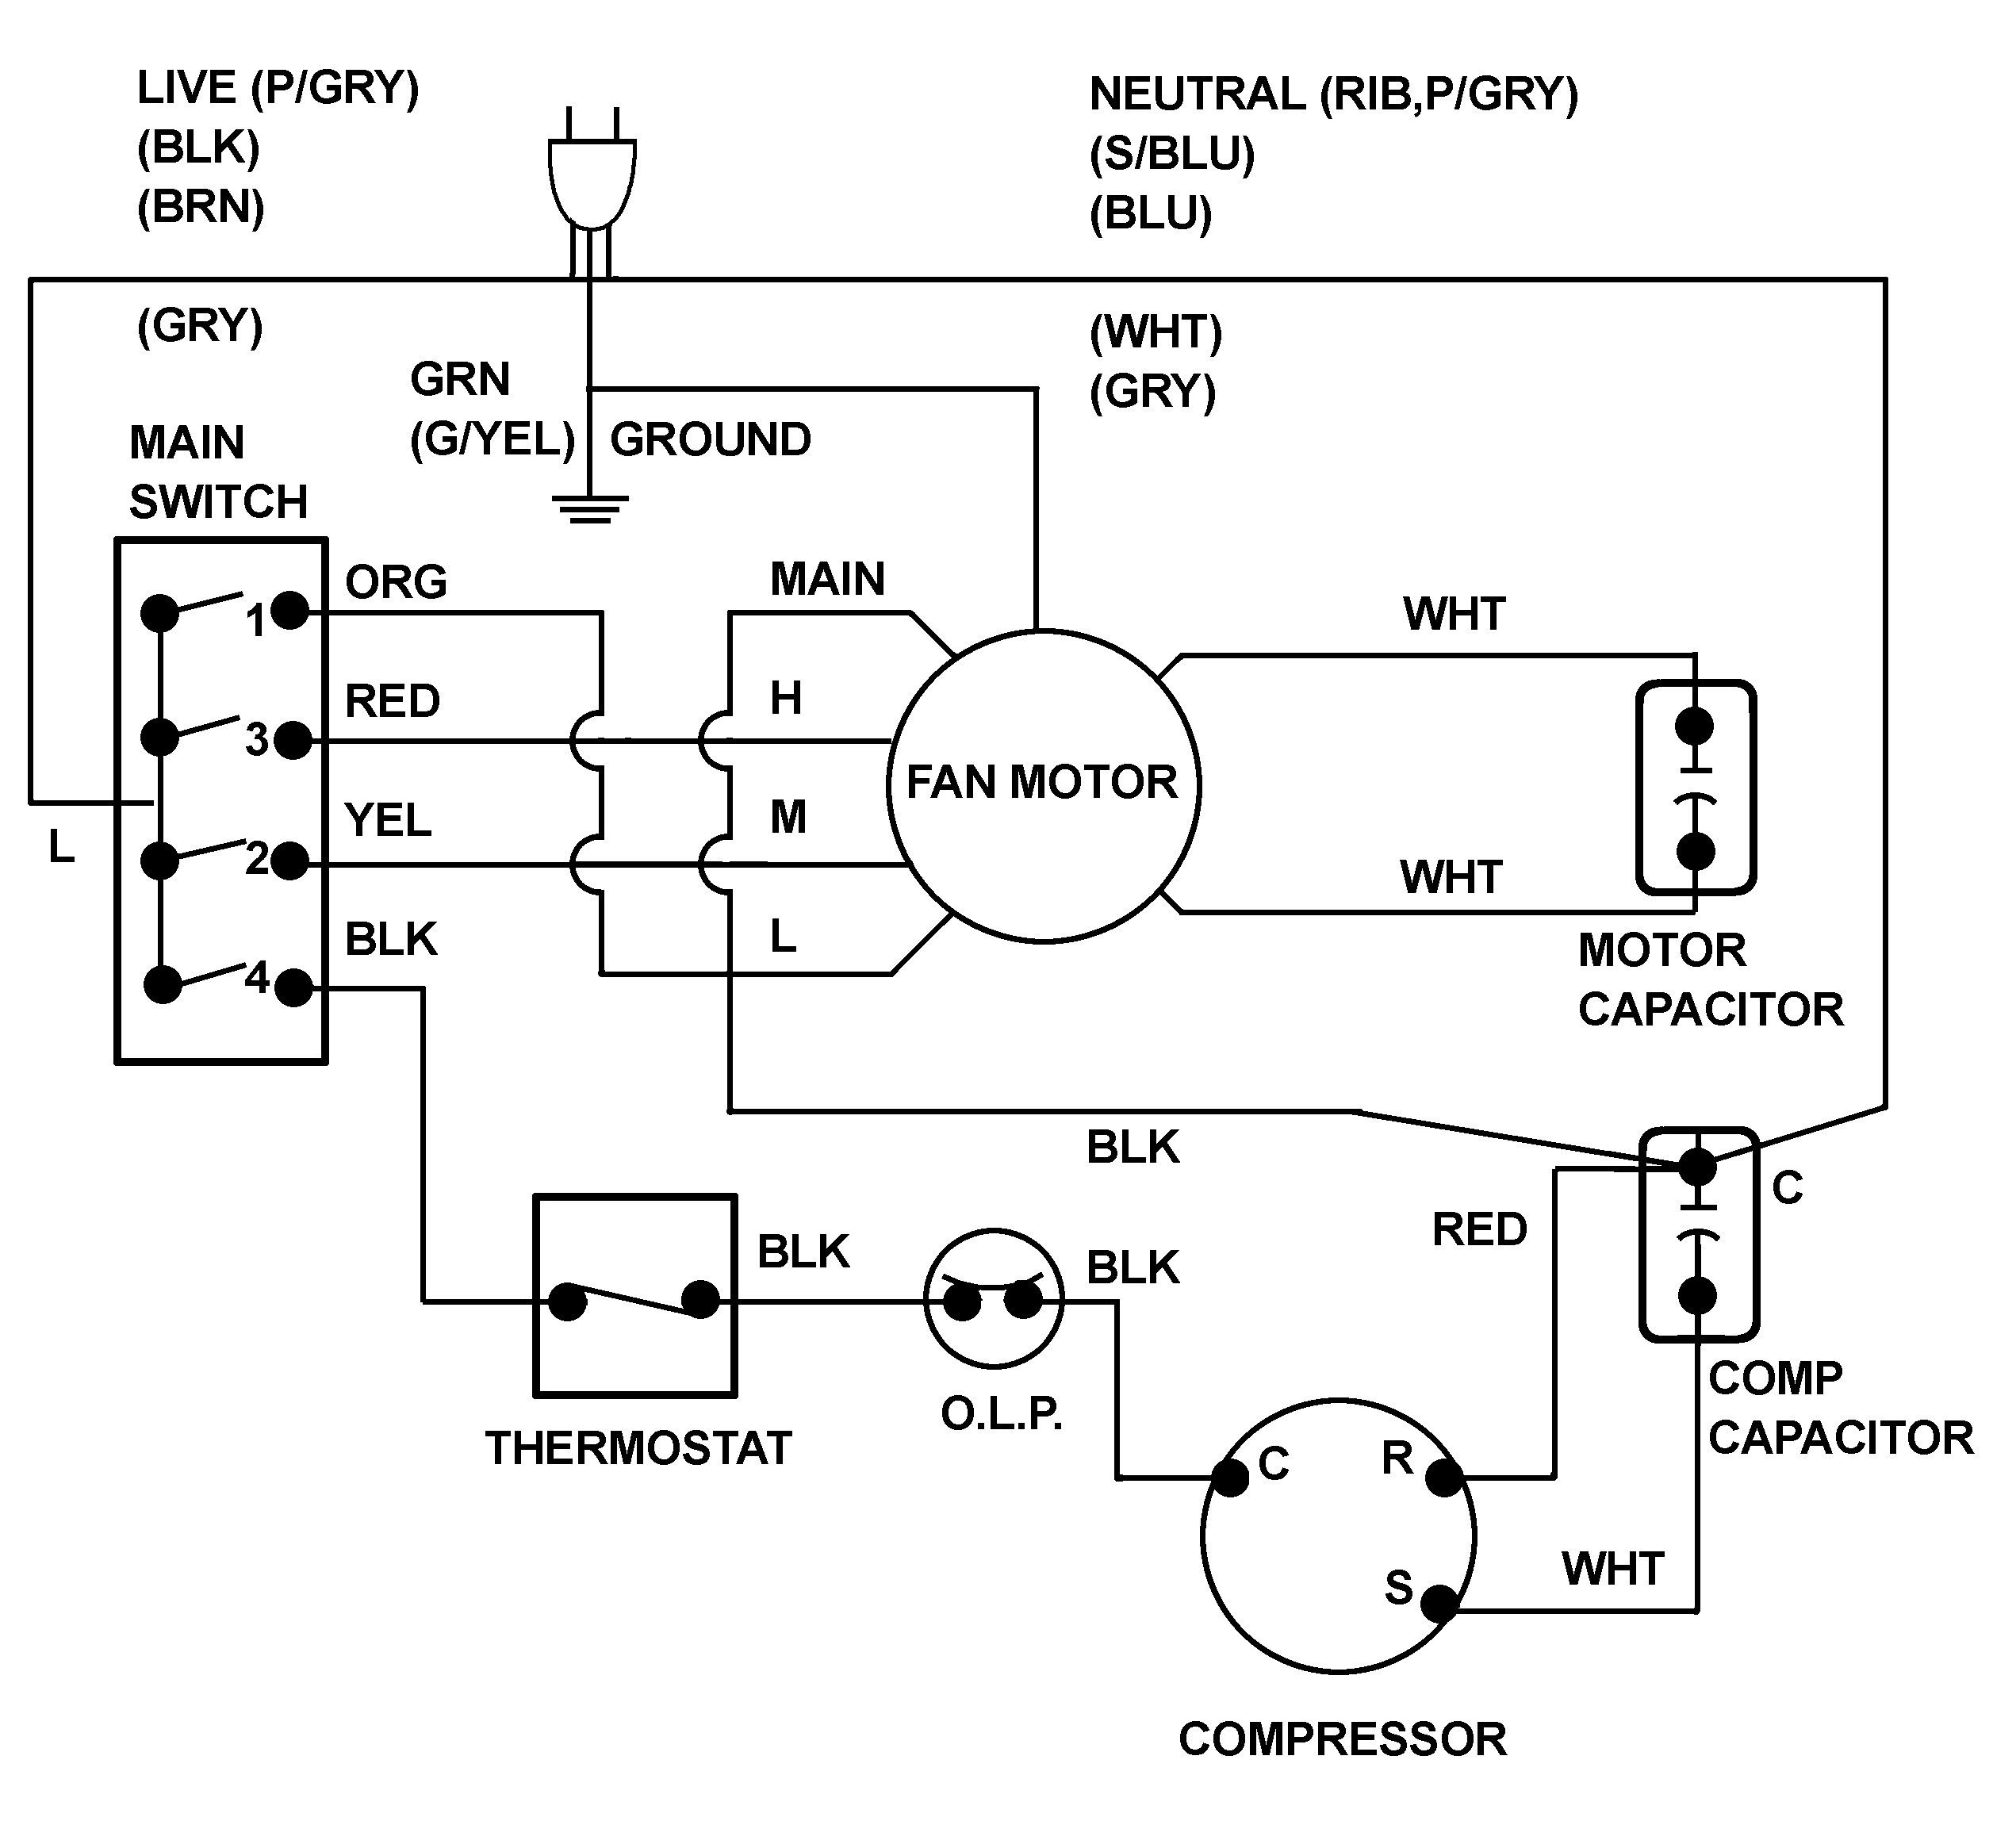 Unique Wiring Diagram Ac Panasonic Diagram Diagramtemplate Diagramsample Check More A Diagrama De Circuito Electrico Circuito Electrico Diagrama De Circuito